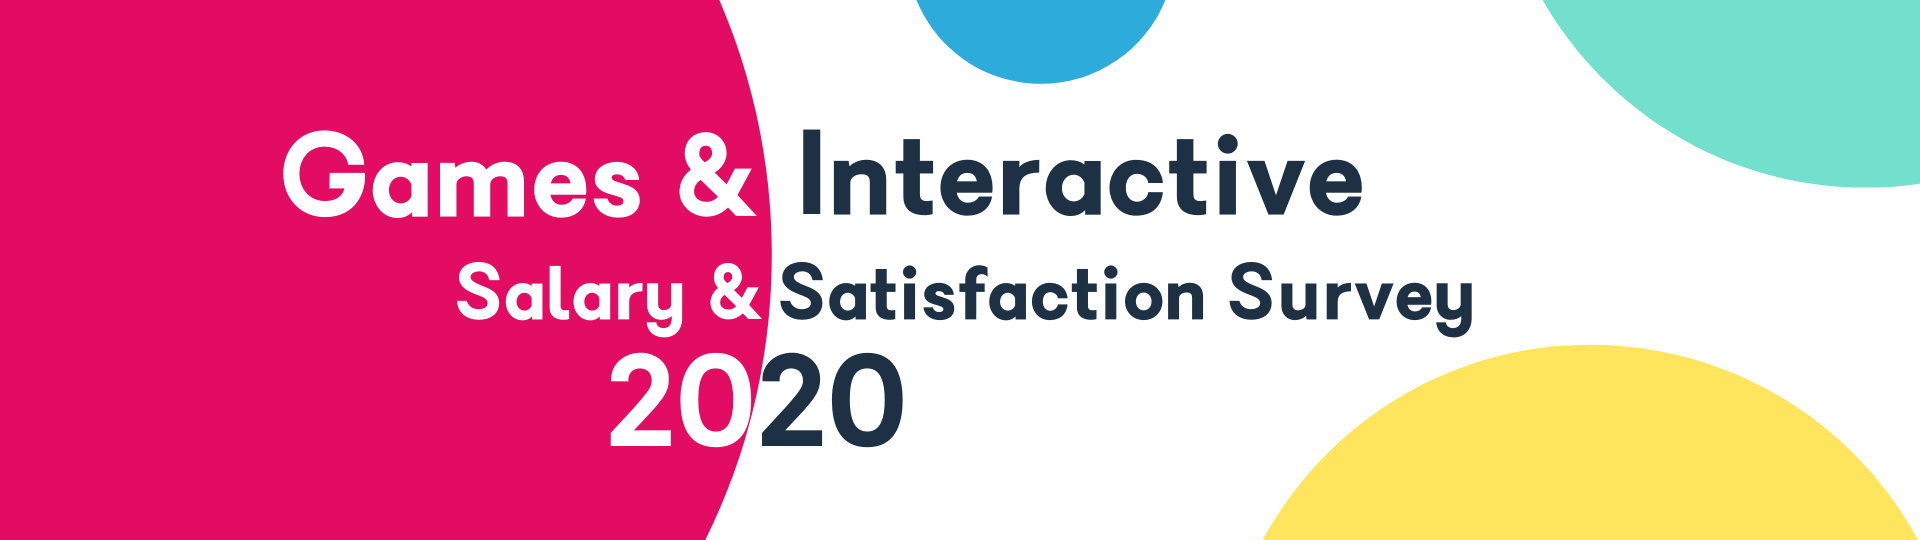 Games and Interactive Salary and Satisfaction Survey 2020